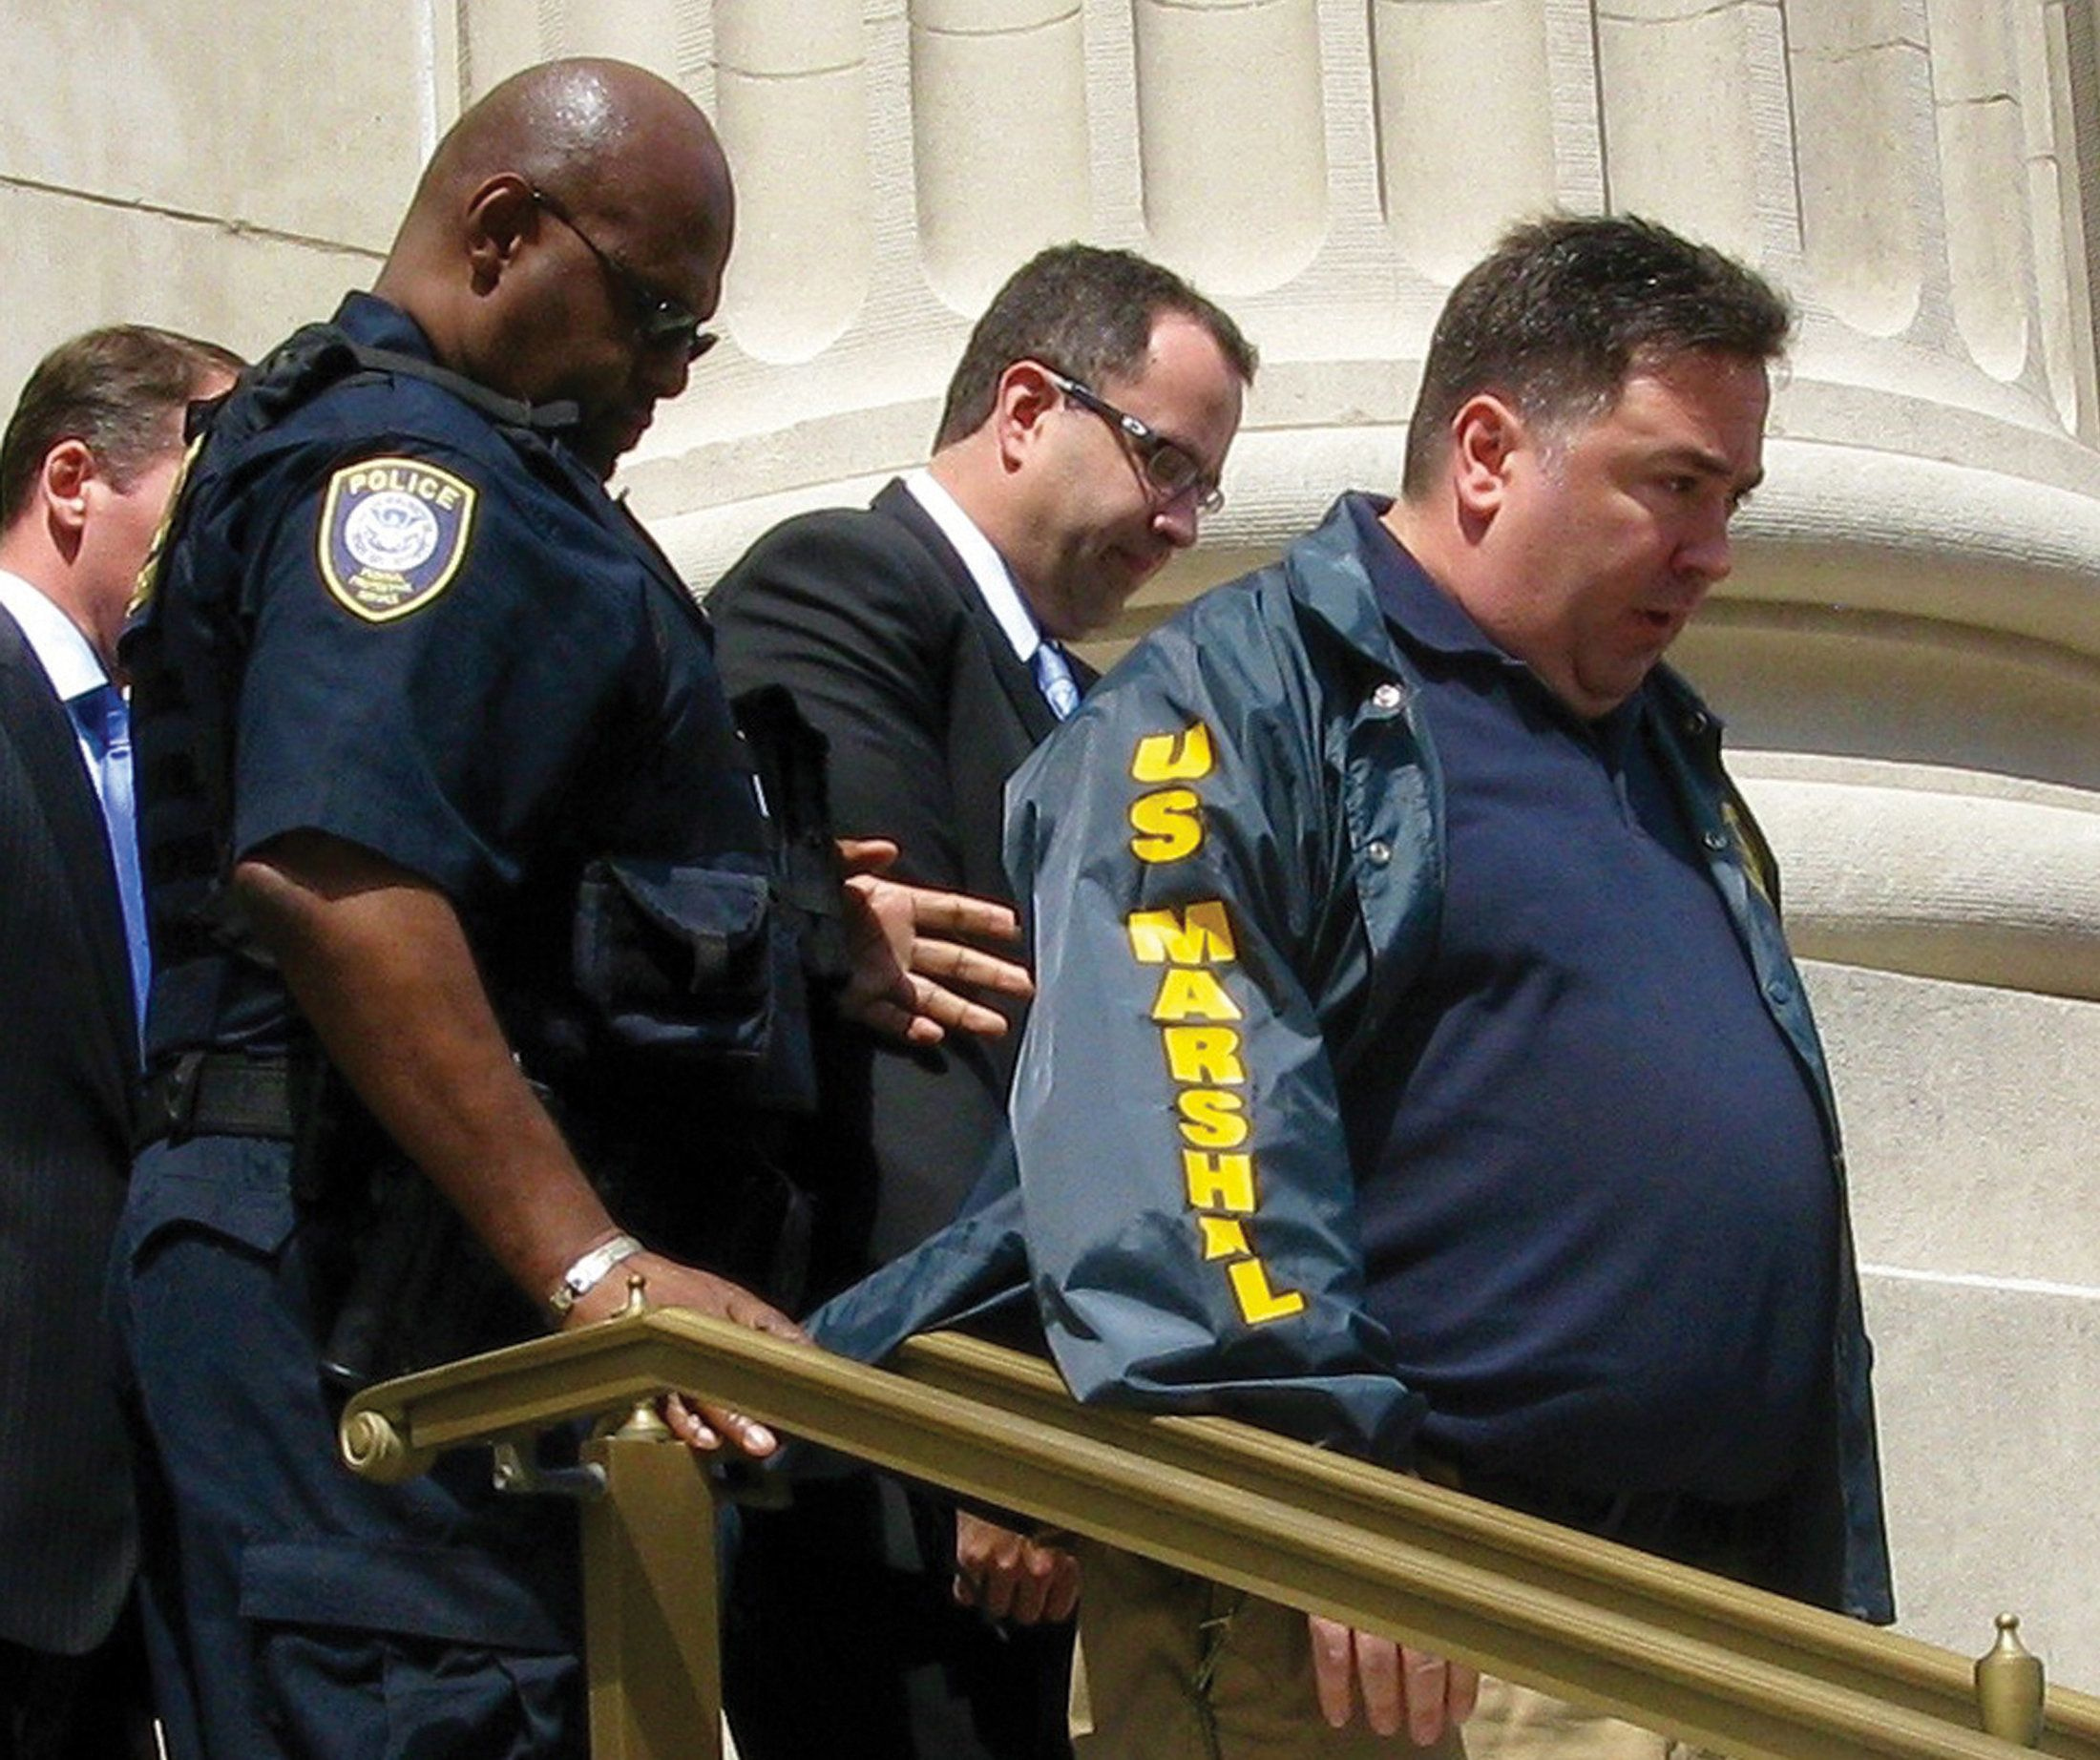 Jared Fogle is led from federal court in Indianapolis, Indiana August 19, 2015. REUTERS/Susan Guyett/File Photo